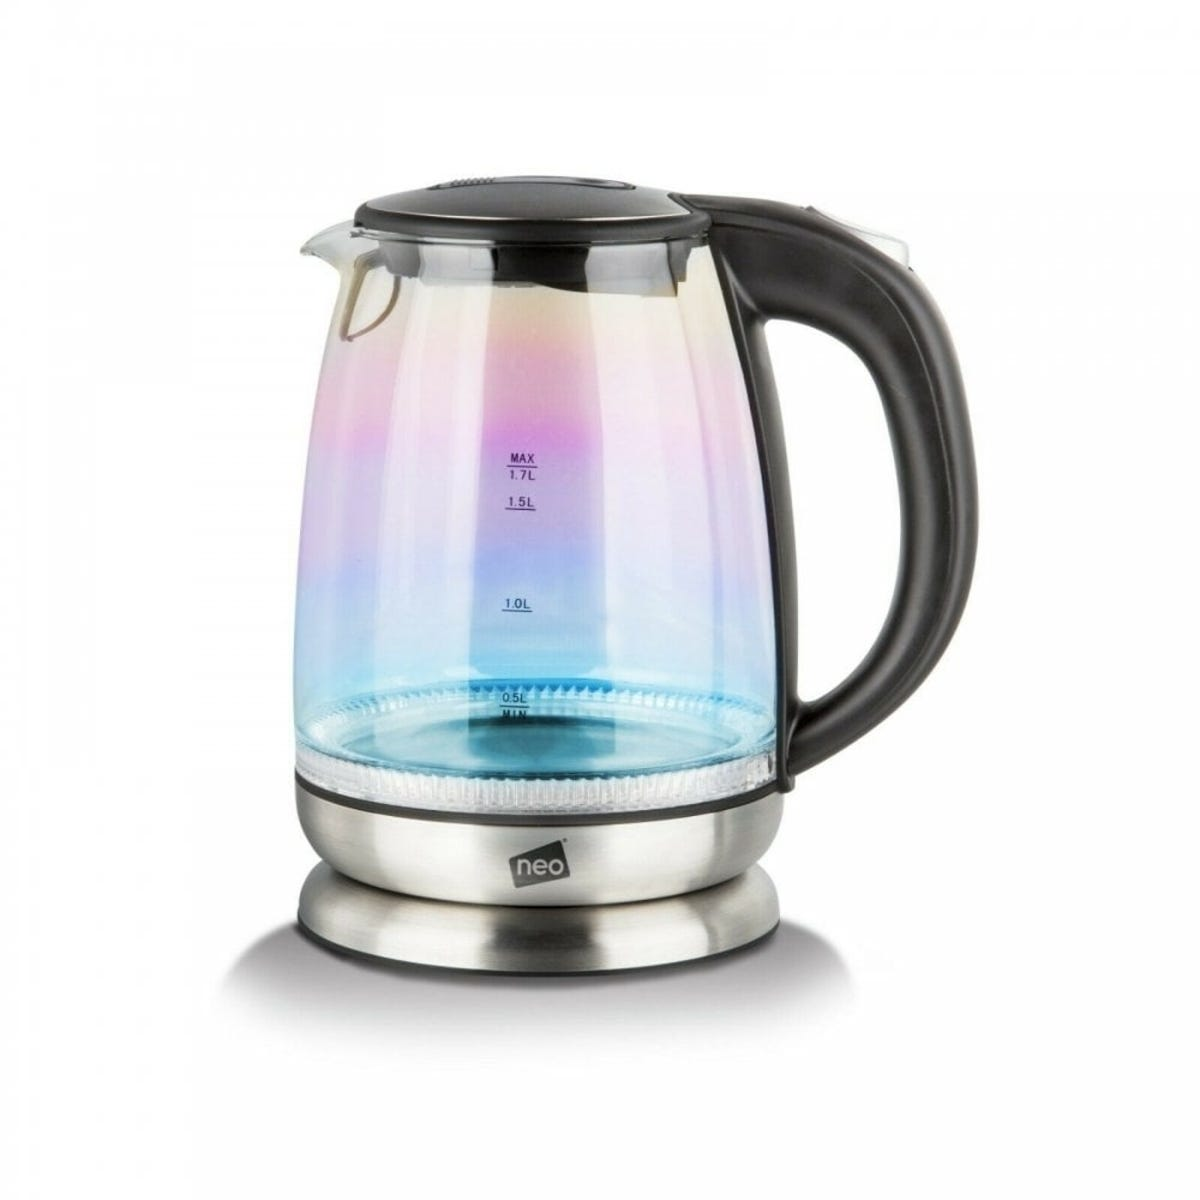 Neo 2200W 1.7L Colour-Changing Rainbow-Effect Glass Jug Kettle - Black